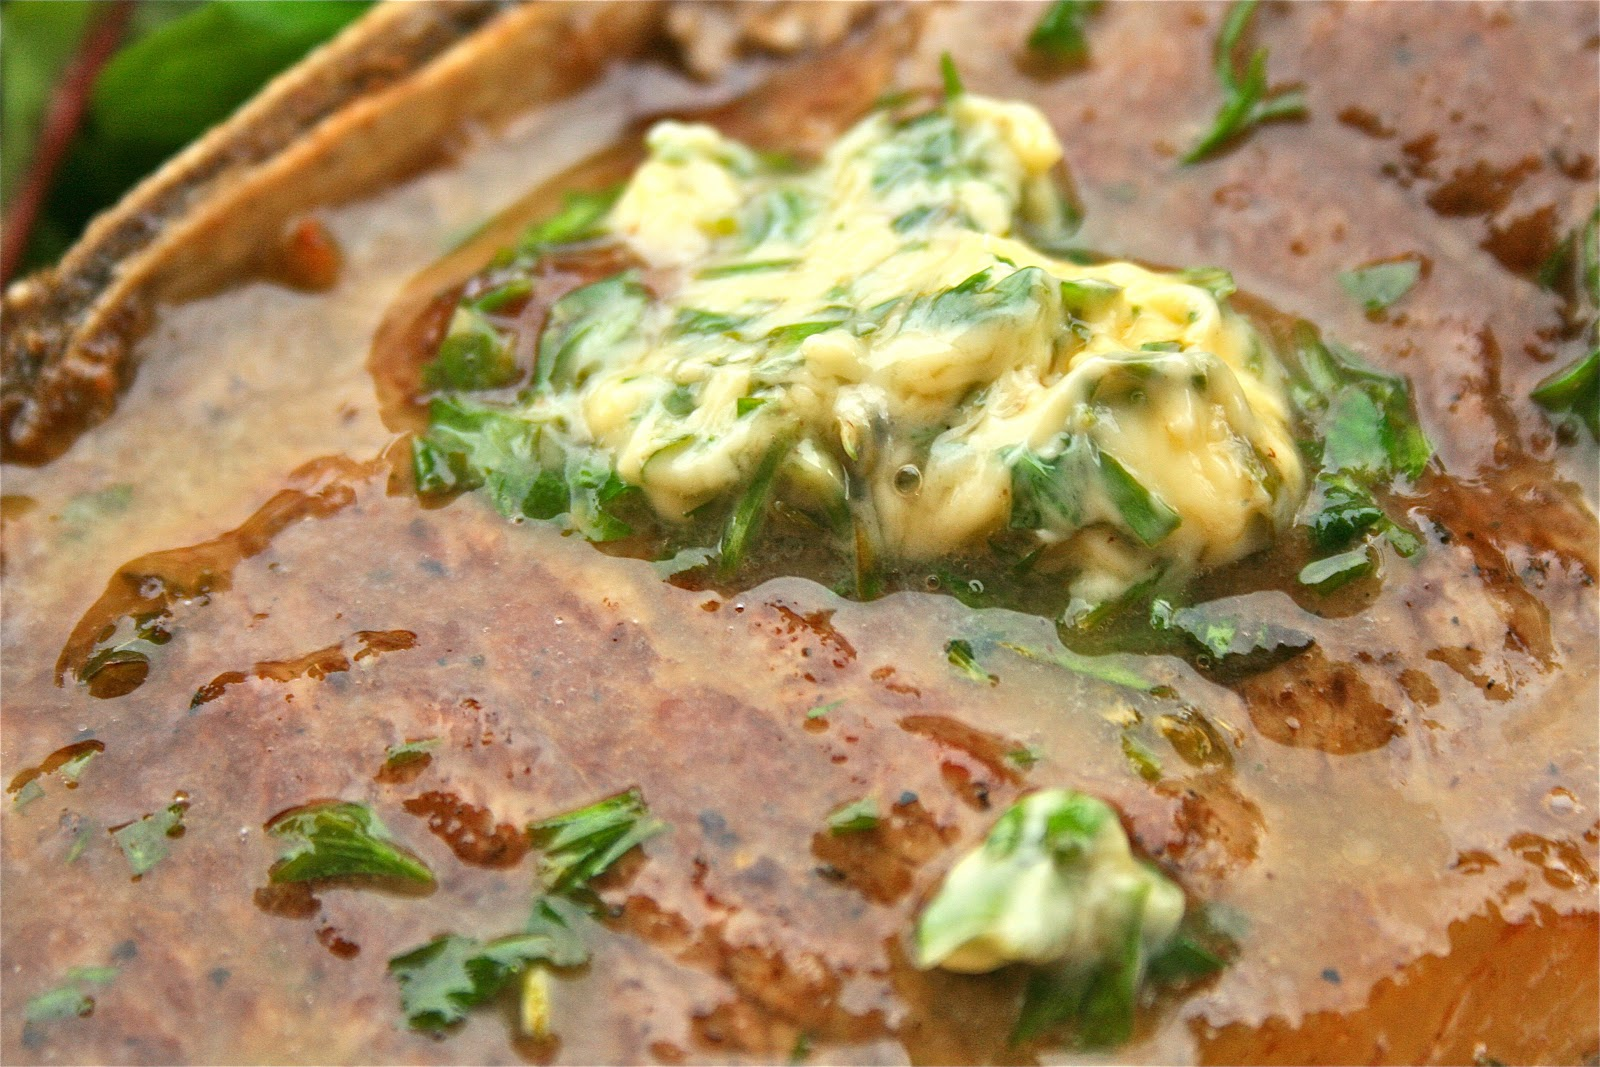 Johnny's Kitchen: Entrecote with Lemon and Herb Butter